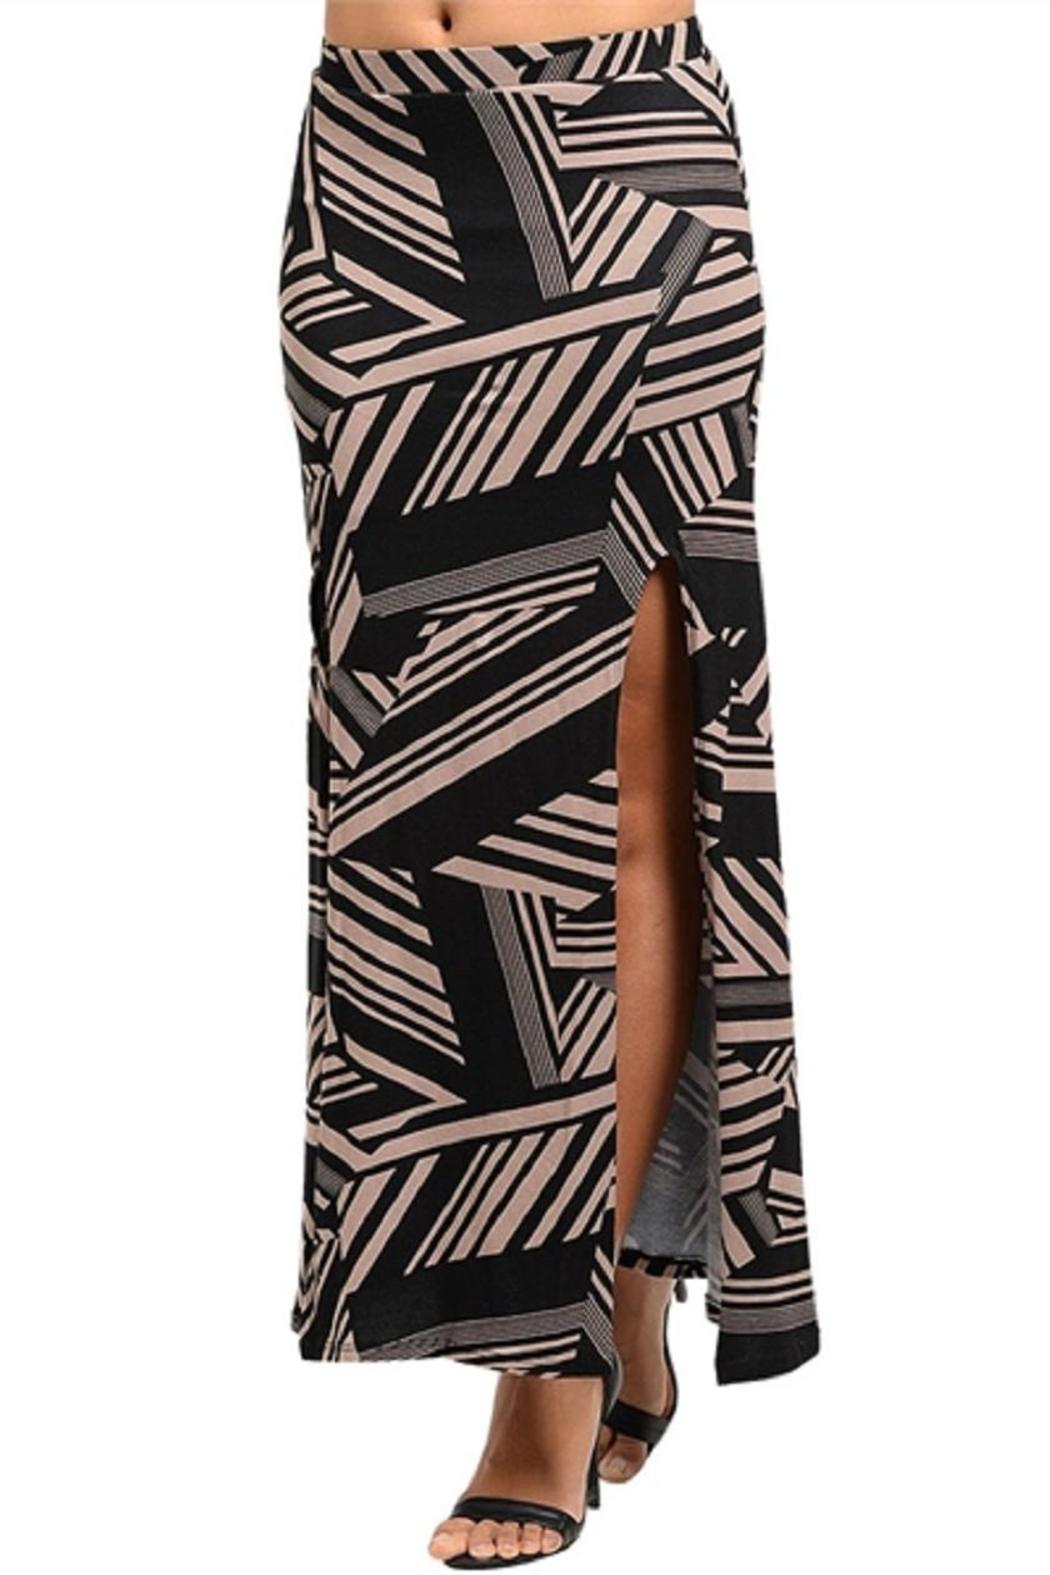 Adore Clothes & More Mocha Black Skirt - Front Cropped Image